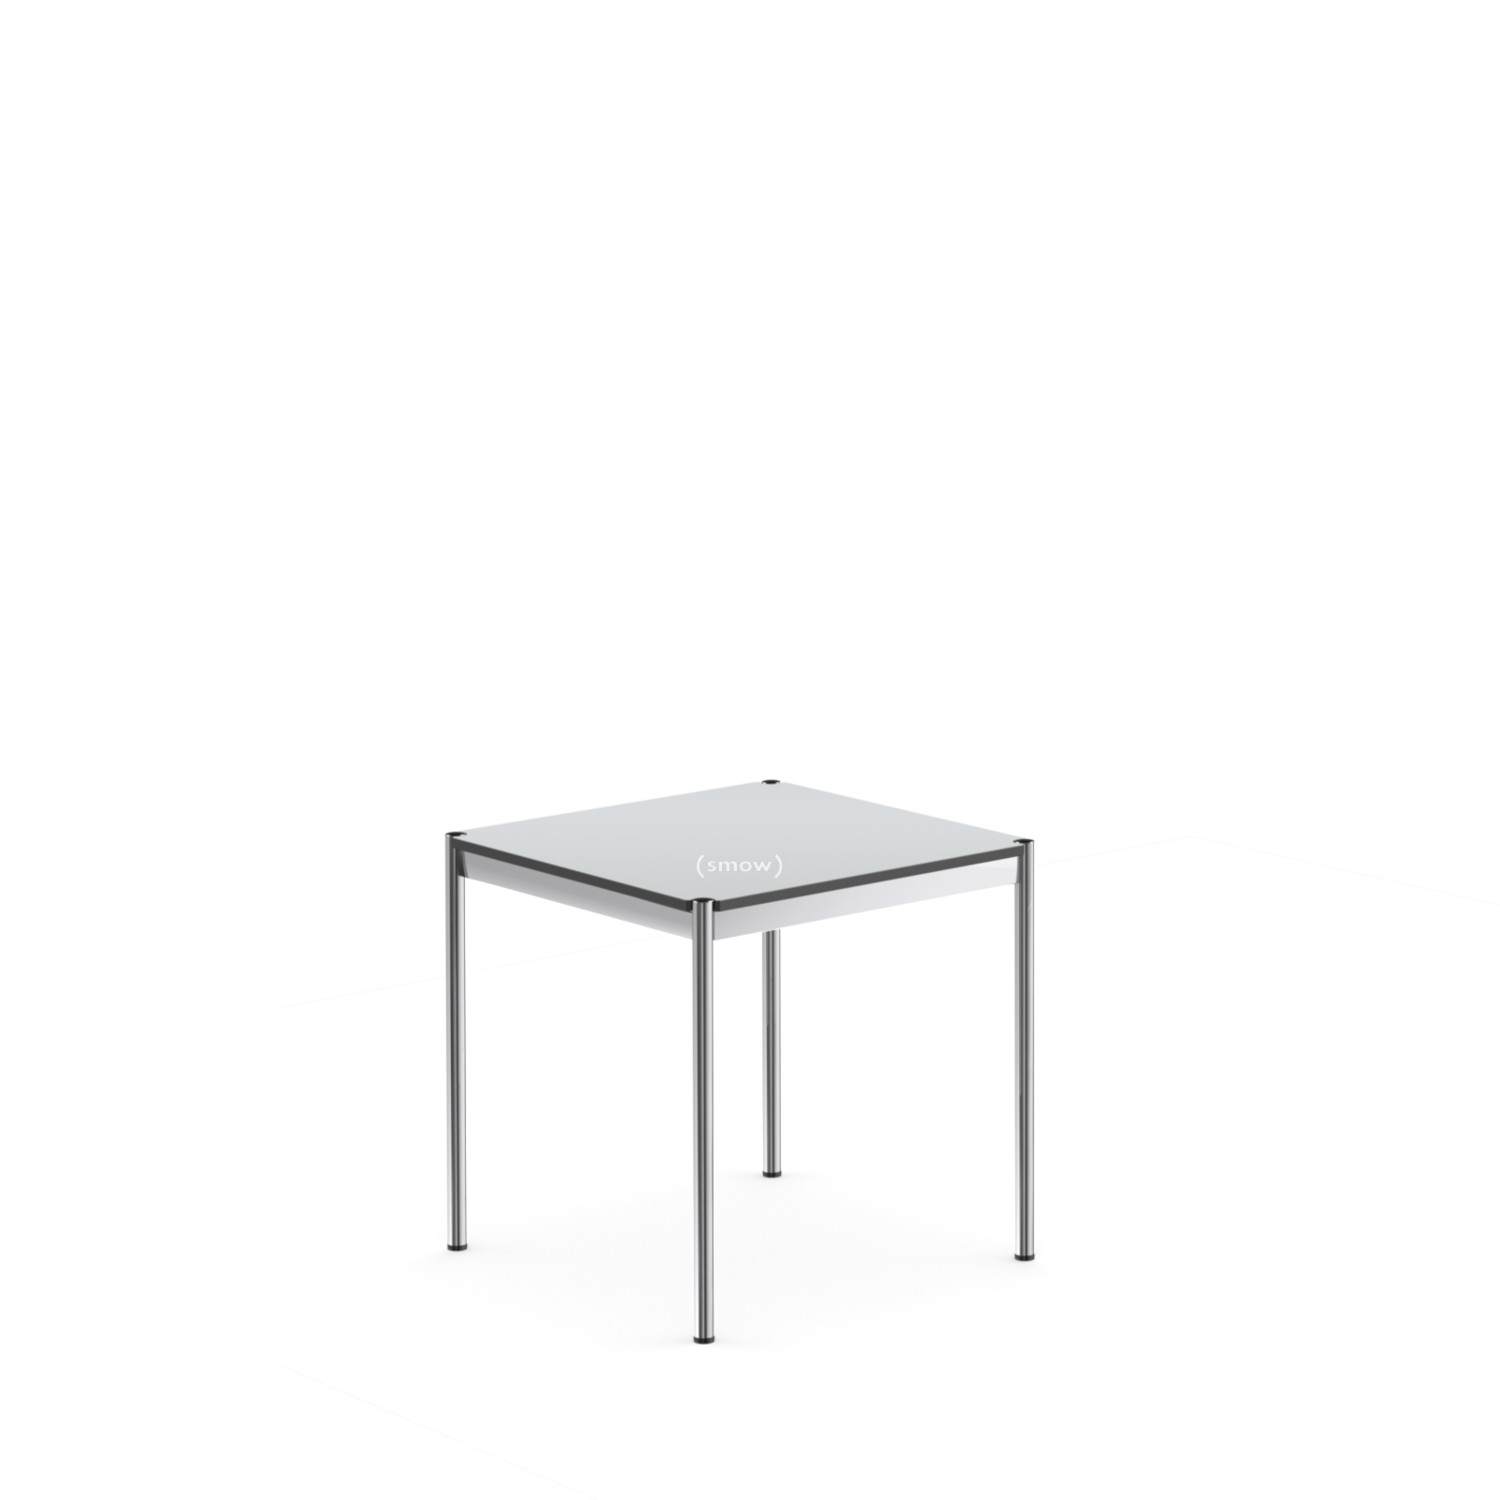 Light Line 3 Couchtisch Usm Haller Table 75 X 75 Cm Laminate Pearl Grey By Fritz Haller